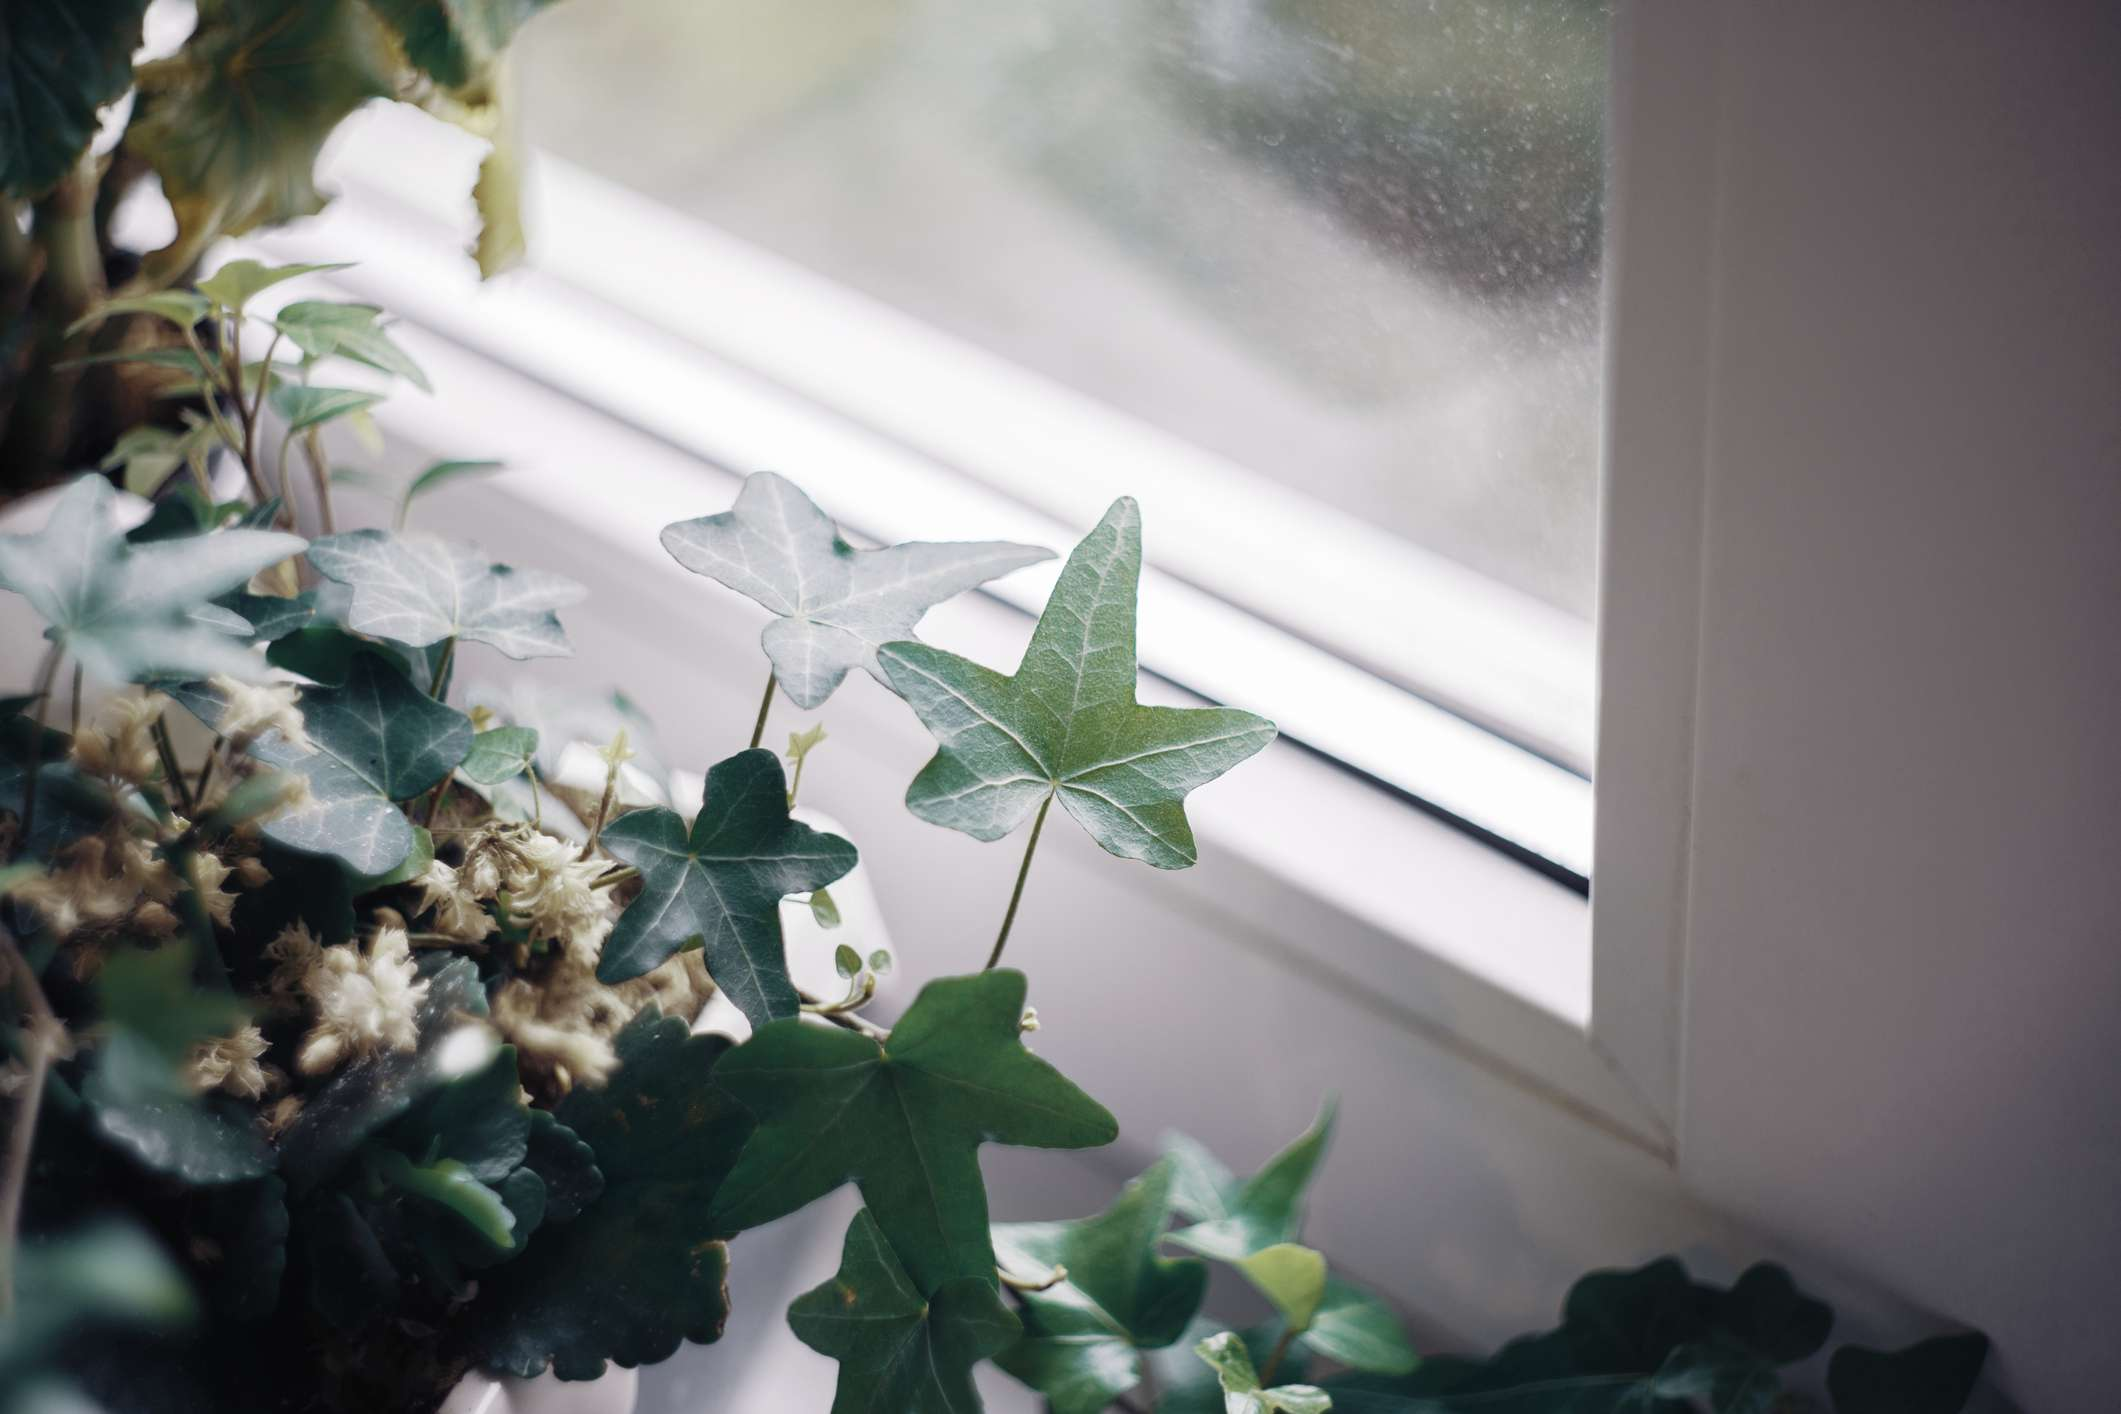 An ivy plant in front of a sunny window